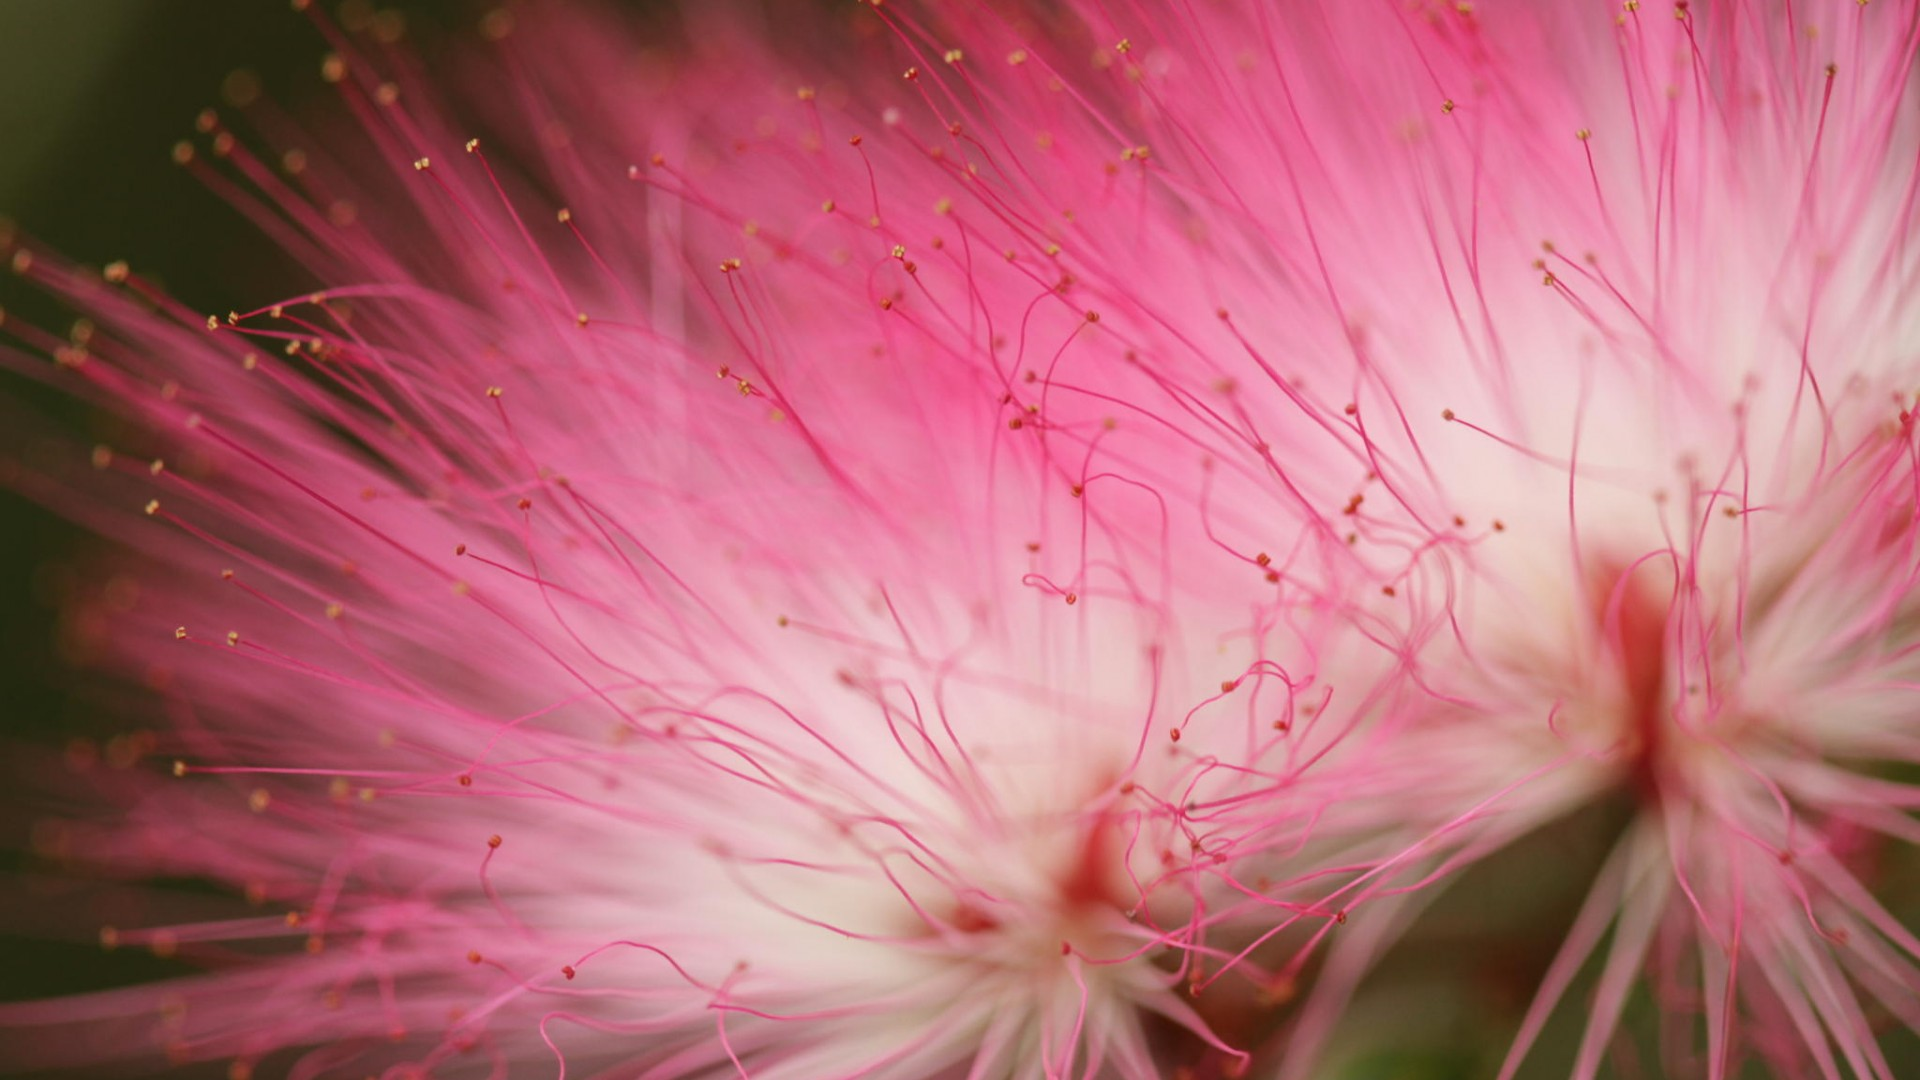 3d Wallpaper Hd 1080p Free Download For Pc Pink Flowers Macro Photography Flowers Wallpaper